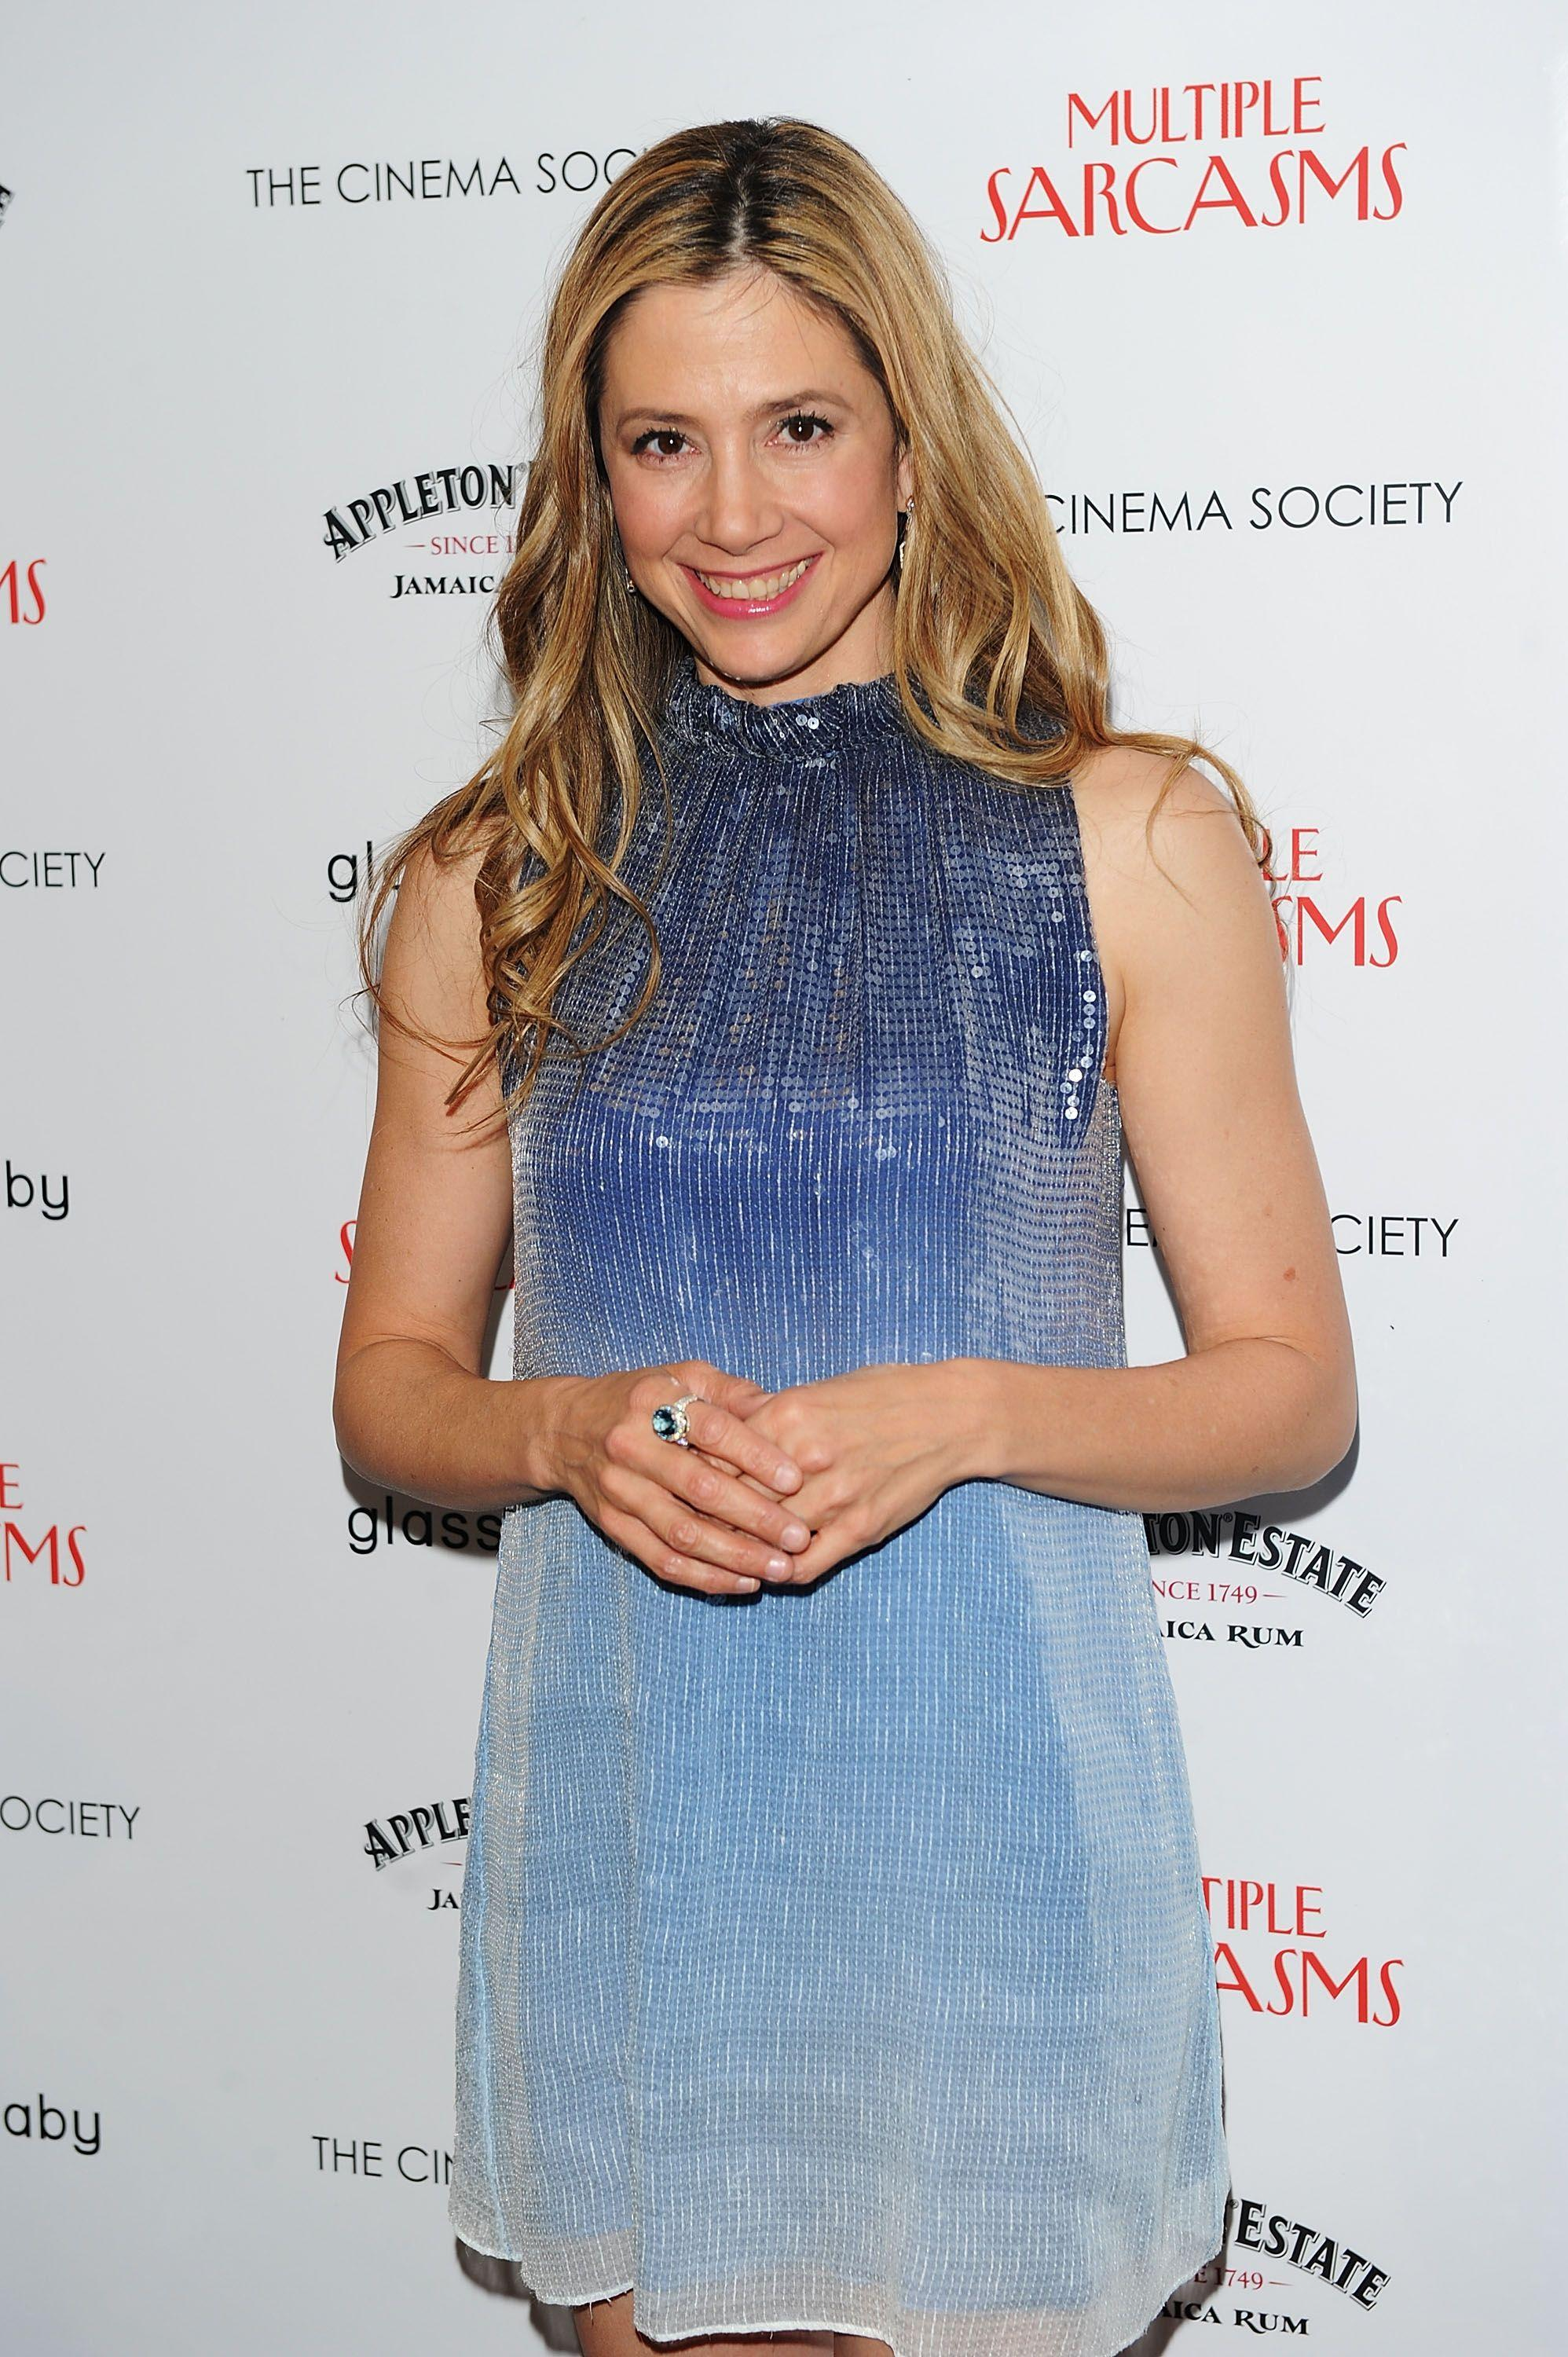 Mira Sorvino Images, Videos and Sexy Pics | Hottie Profile ...